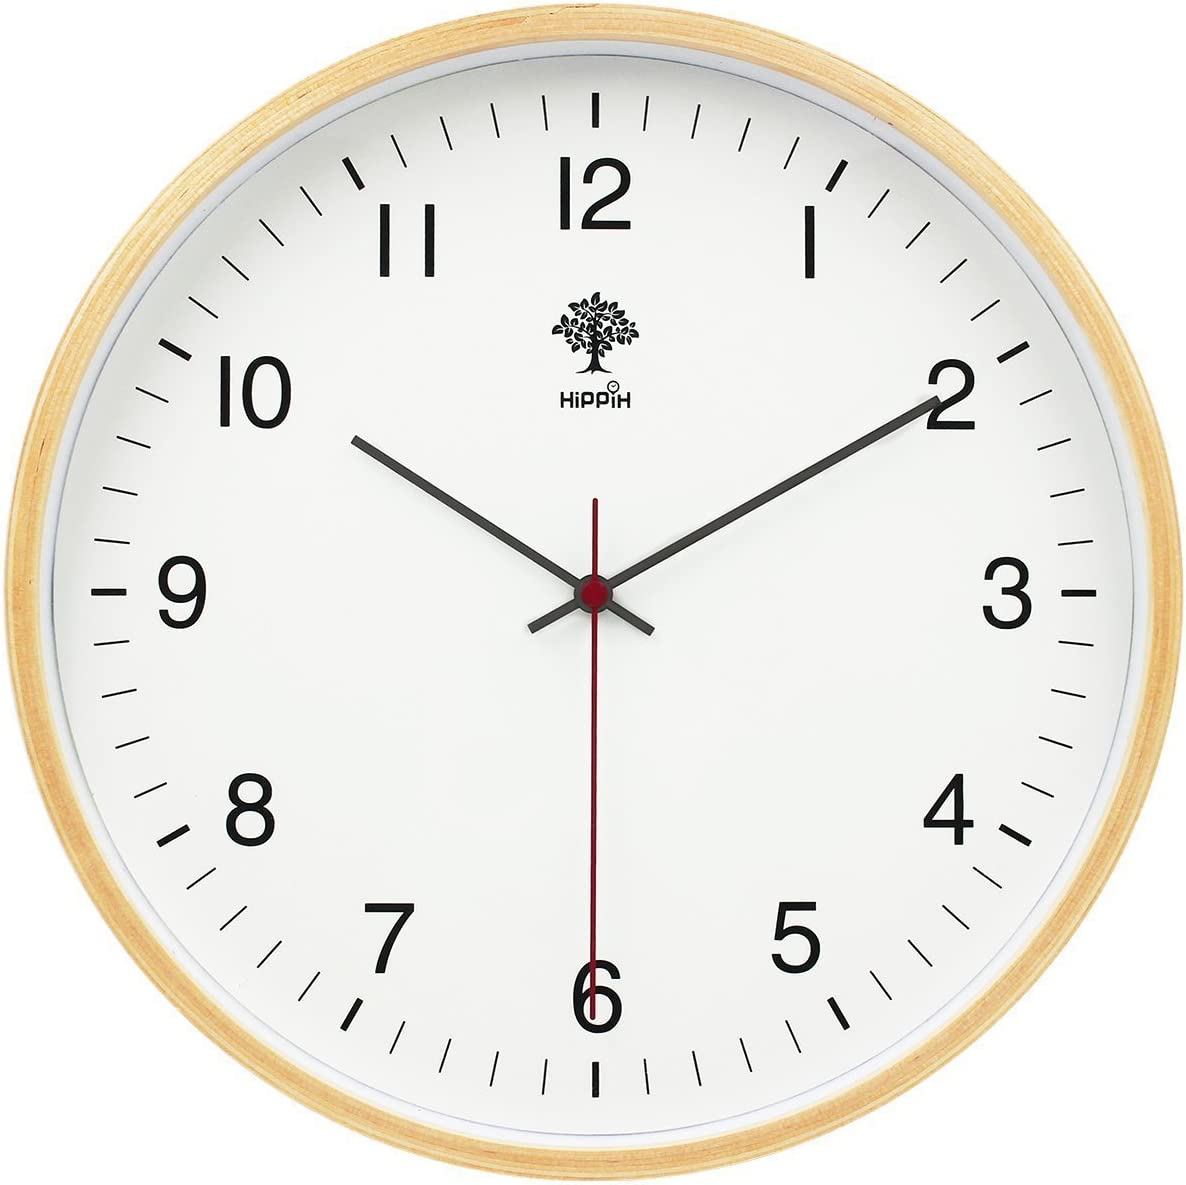 HIPPIH Wall Clock - 8 Inch Digital Sweep Decorative Vintage Wooden Clocks Easy to Read for Office/Kitchen/Bedroom/Living Room/Classroom, Upgraded